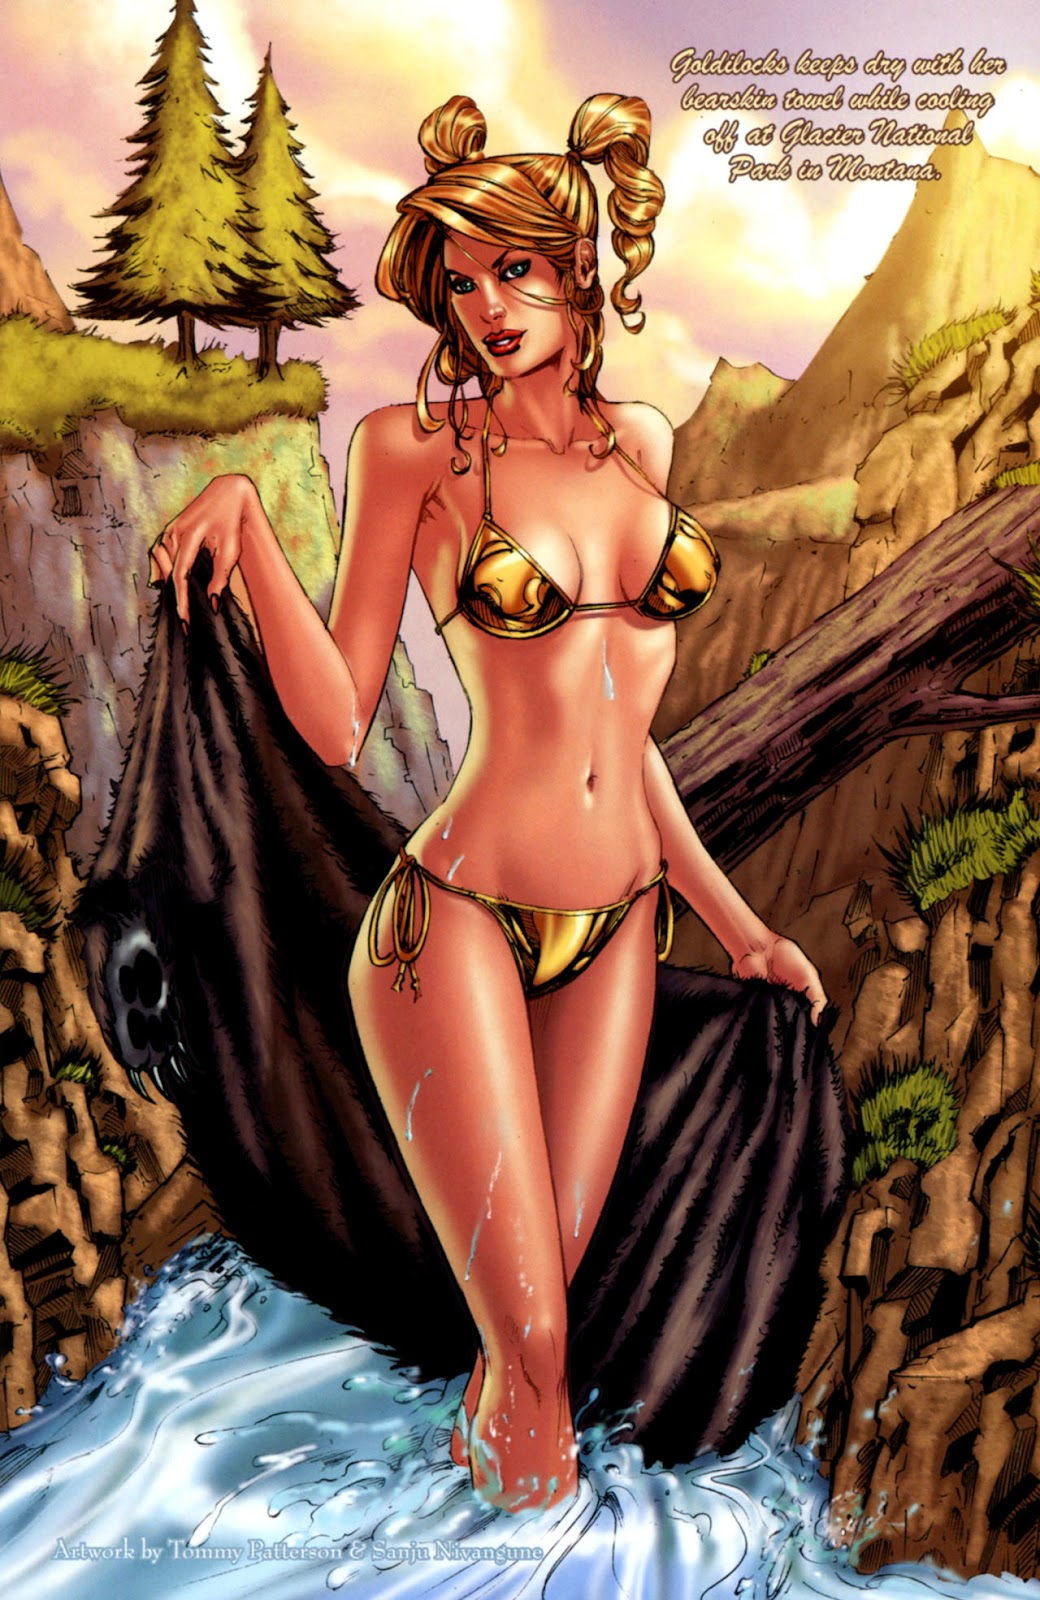 Grimm Fairy Tales: Swimsuit Edition Full #1 - English 14